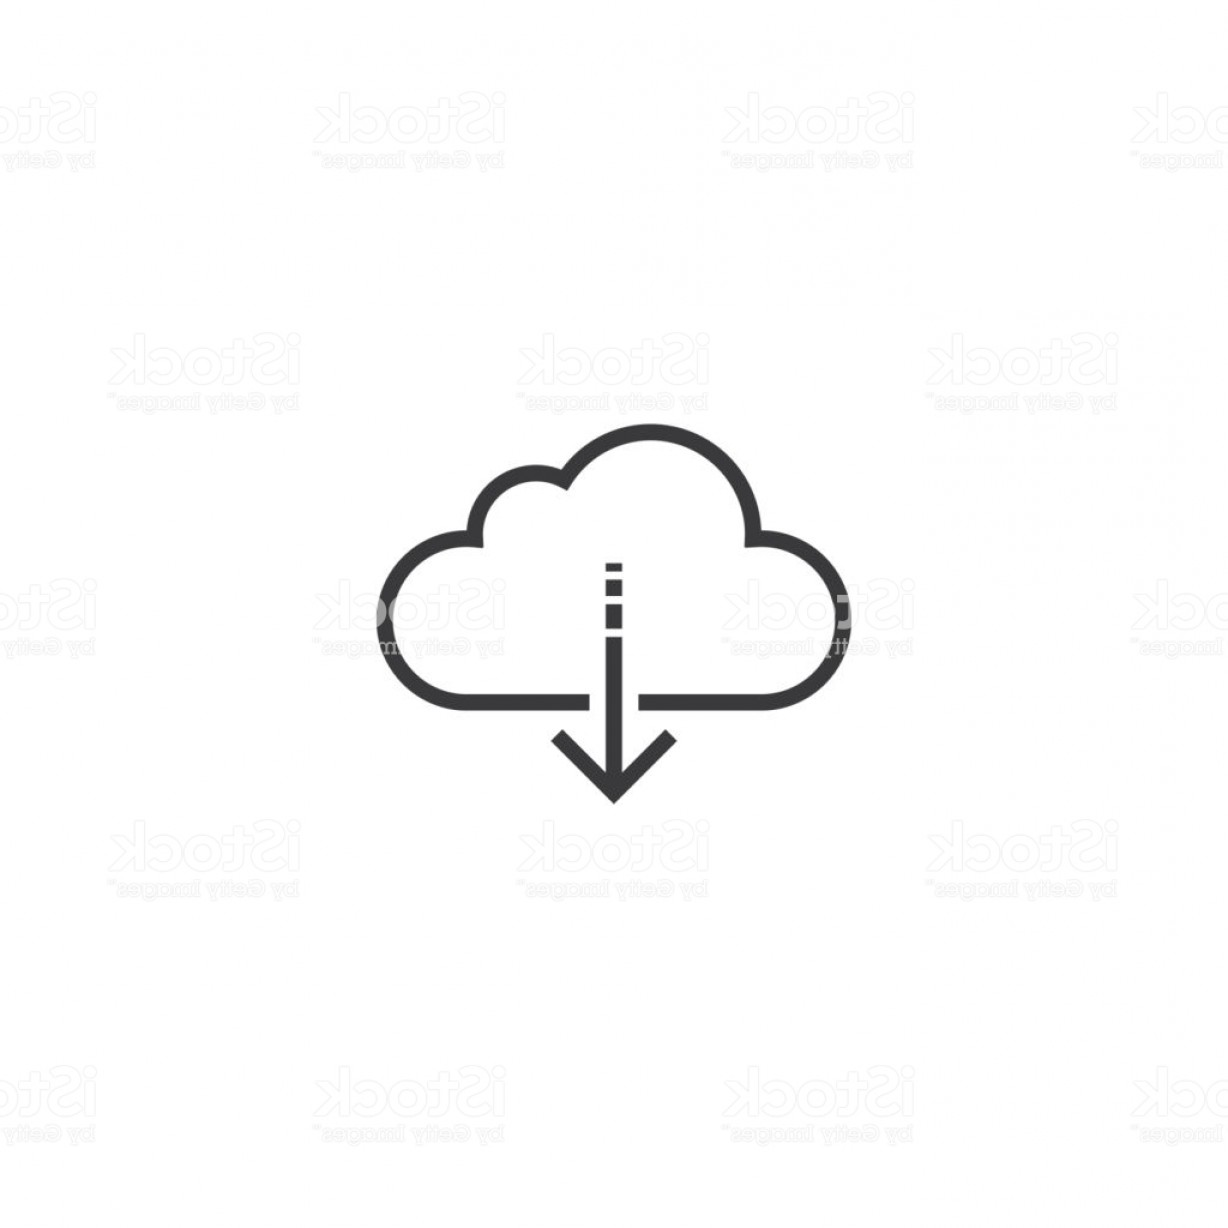 Downloadable Vector Cross: Download Icon Line Style Vector Illustration Gm